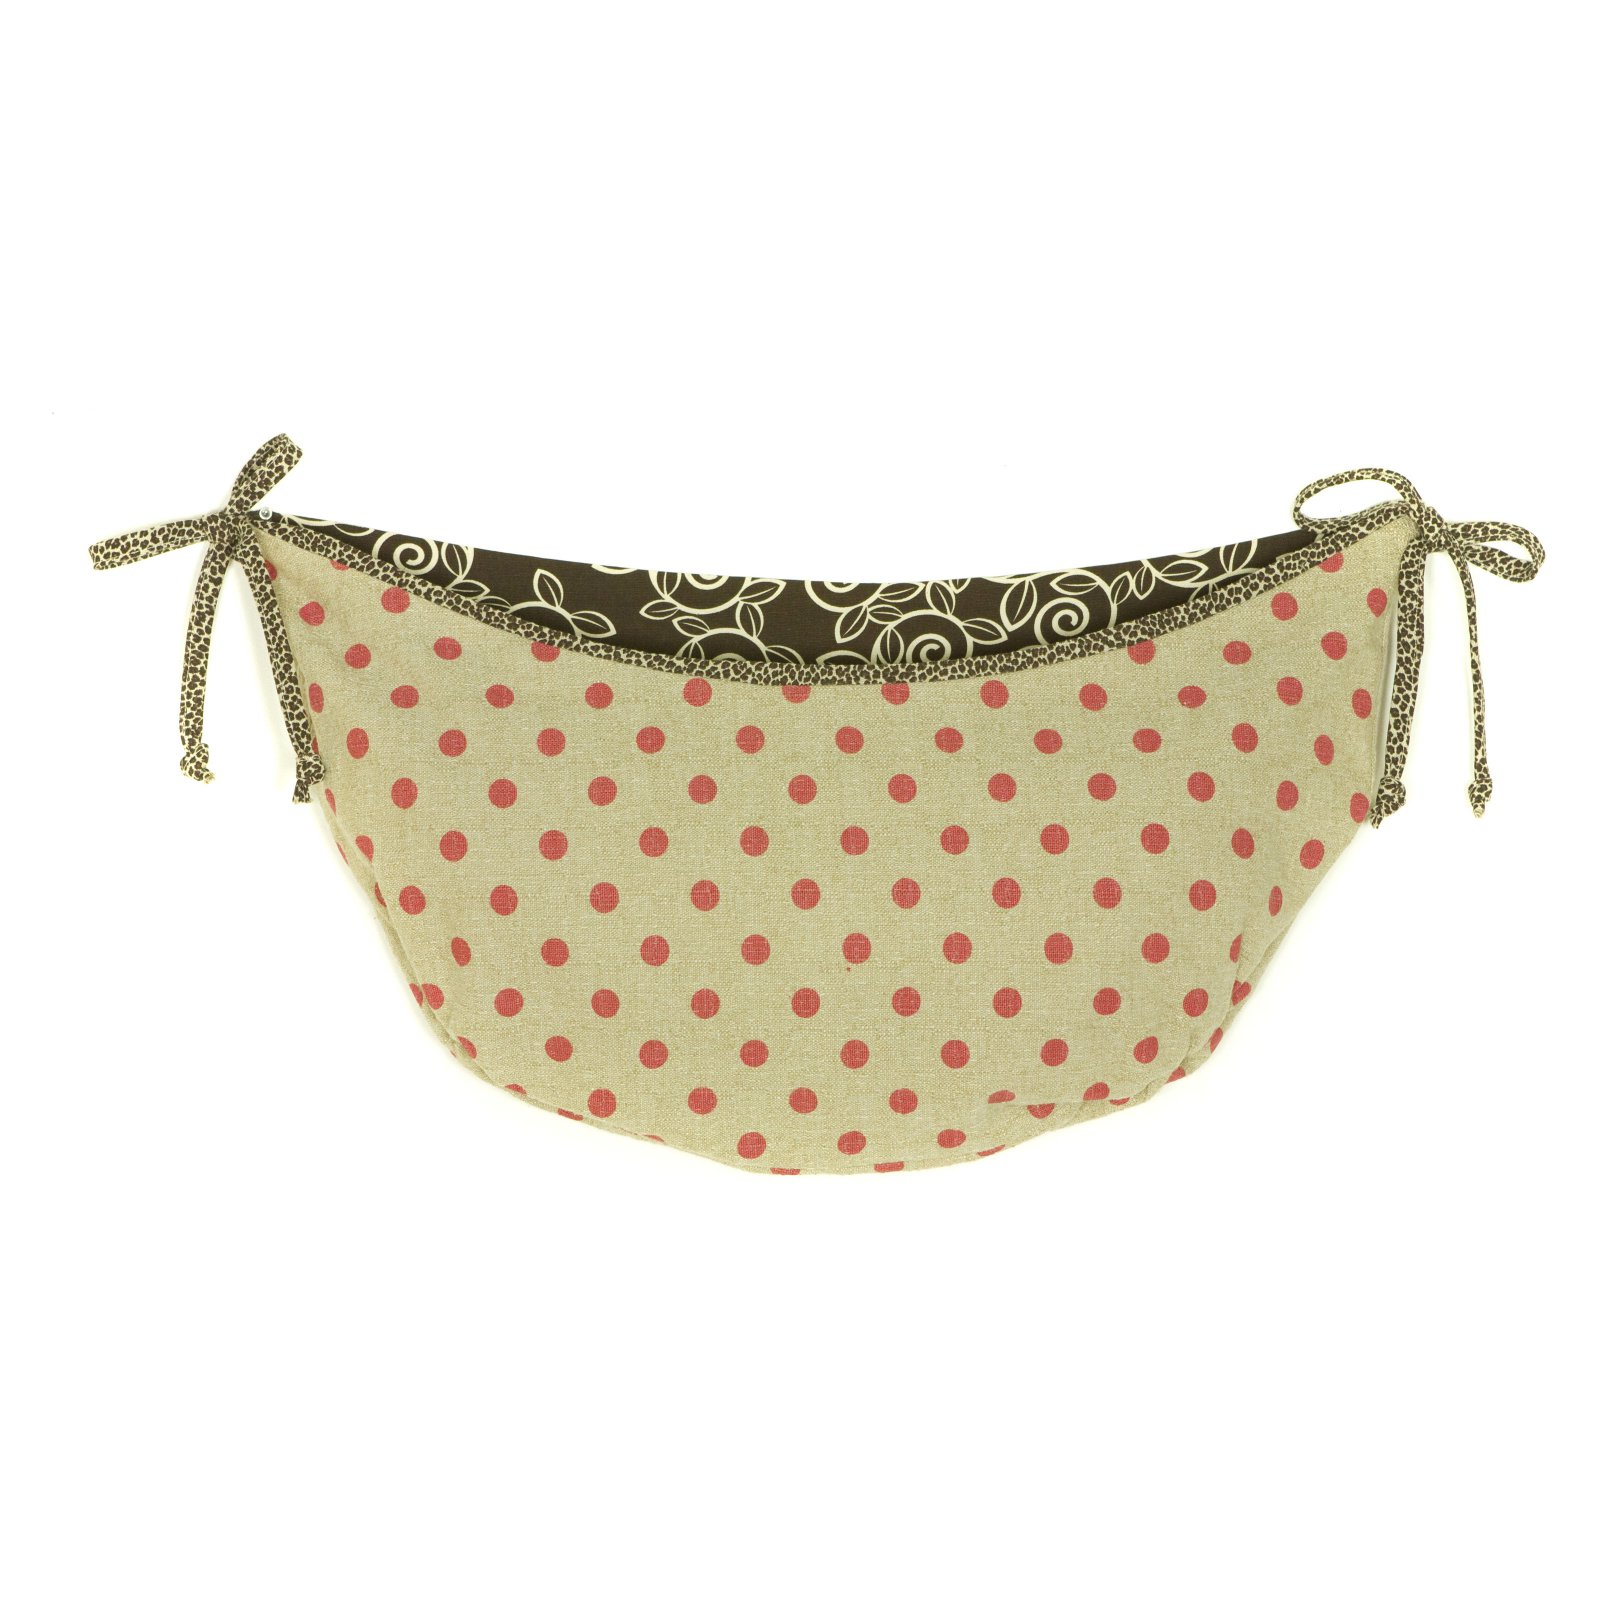 Cotton Tale N. Selby Raspberry Dot Toy Bag